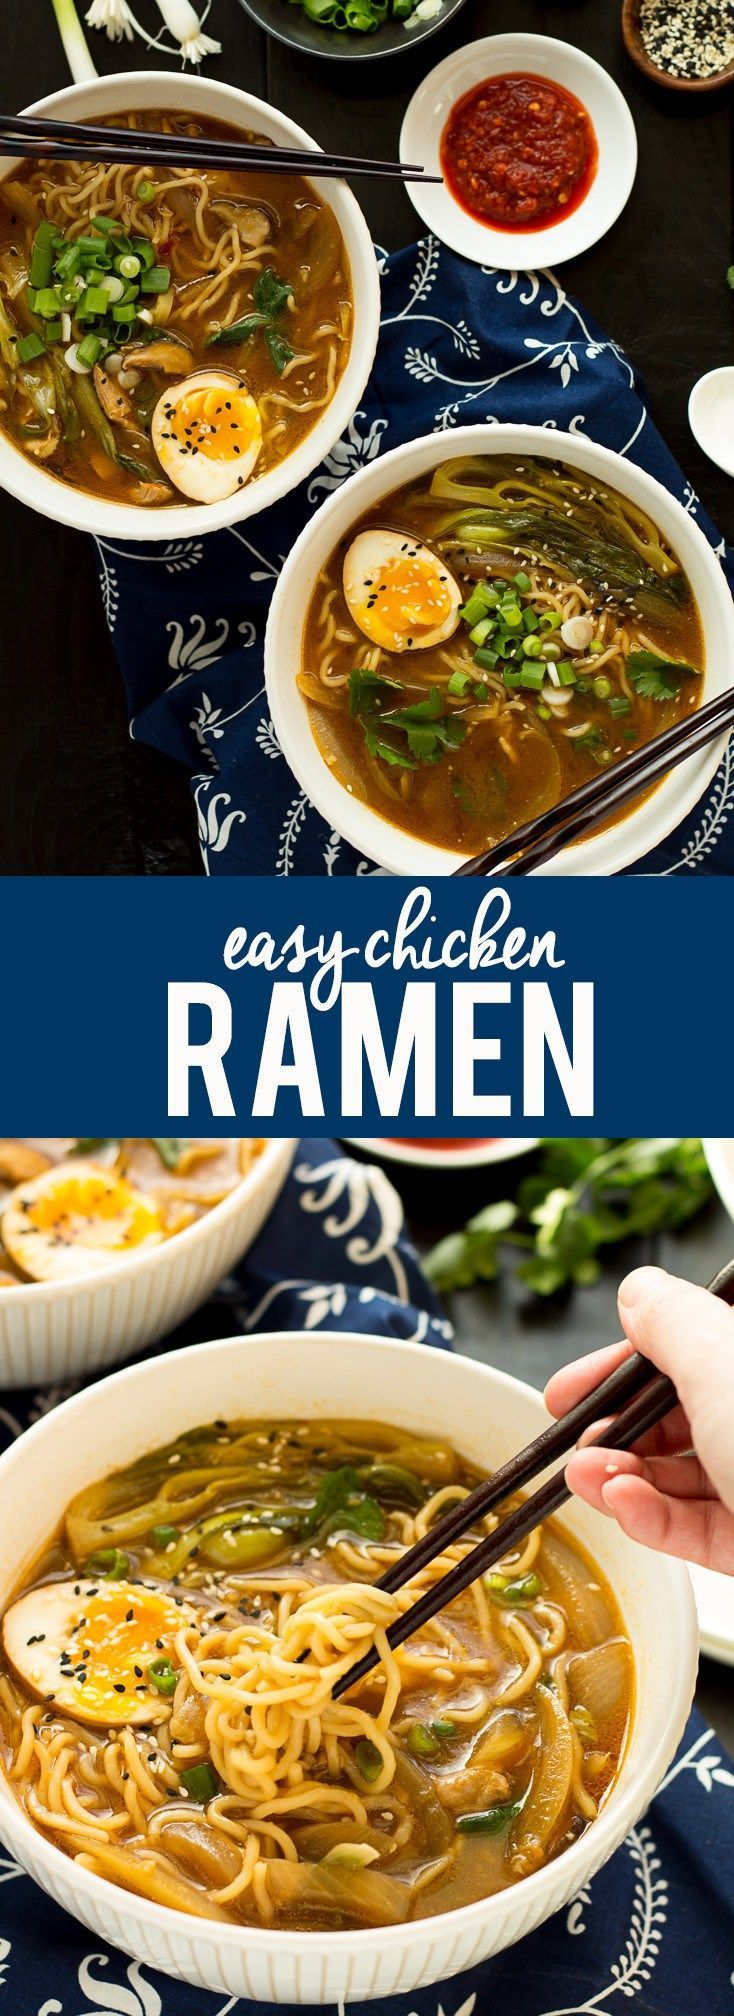 This Easy Chicken Ramen can be made at home in about 30 minutes! A flavorful broth with chicken and noodles, and don't forget the ramen egg!: